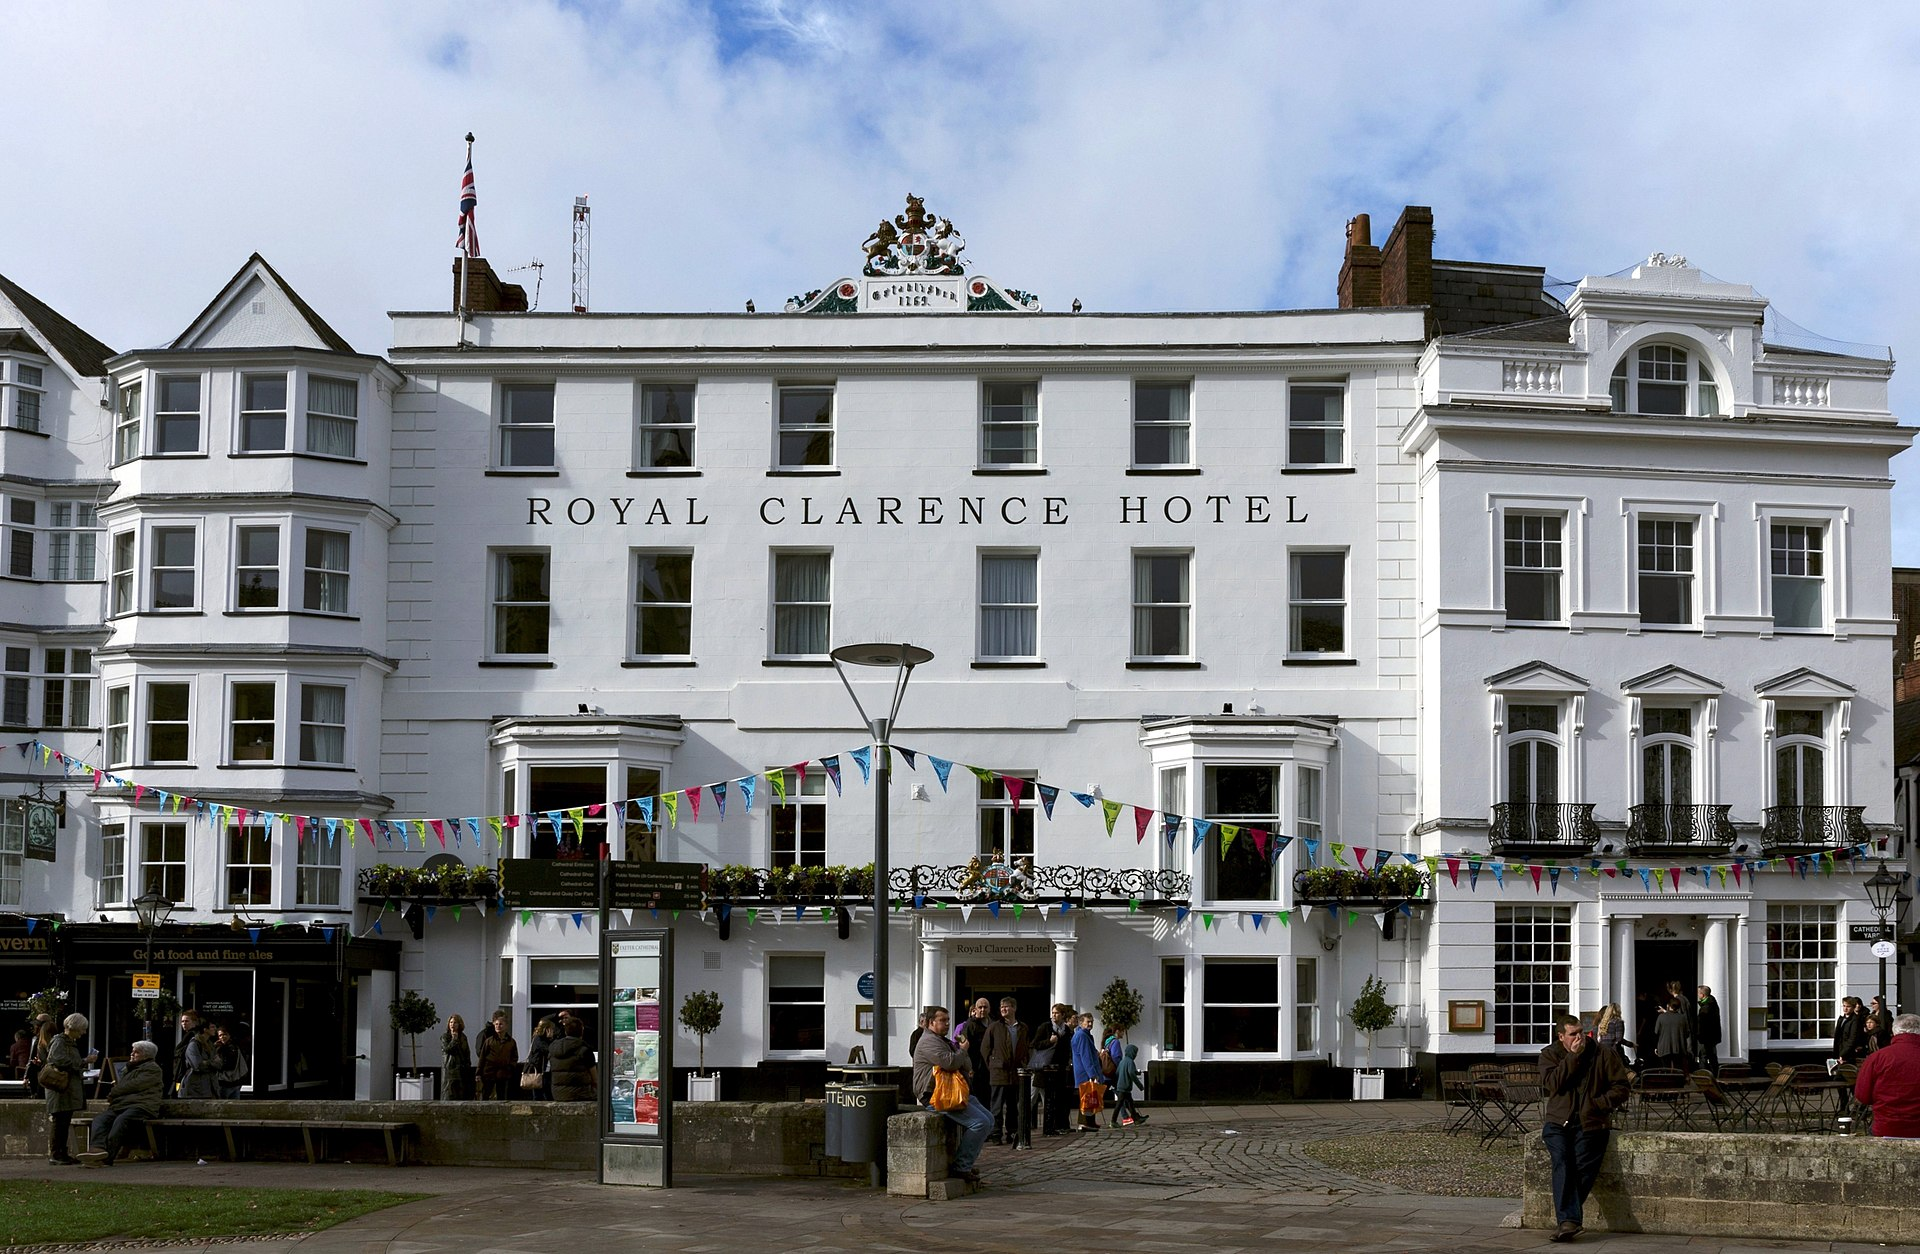 Royal Clarence Hotel  Wikipedia